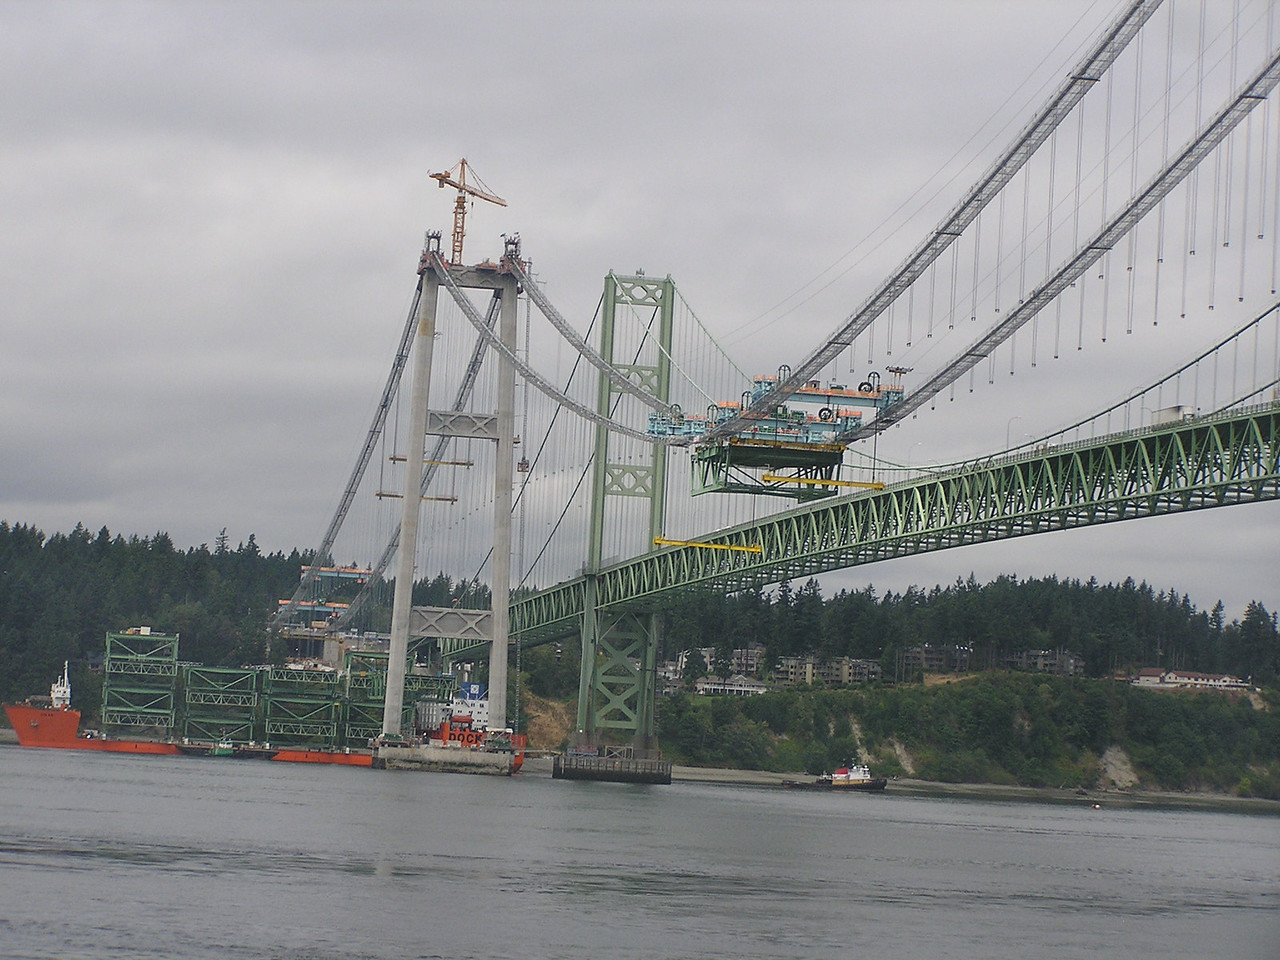 Bridge sections arrive by boat and are apparently lifted into place.  Interesting process ...